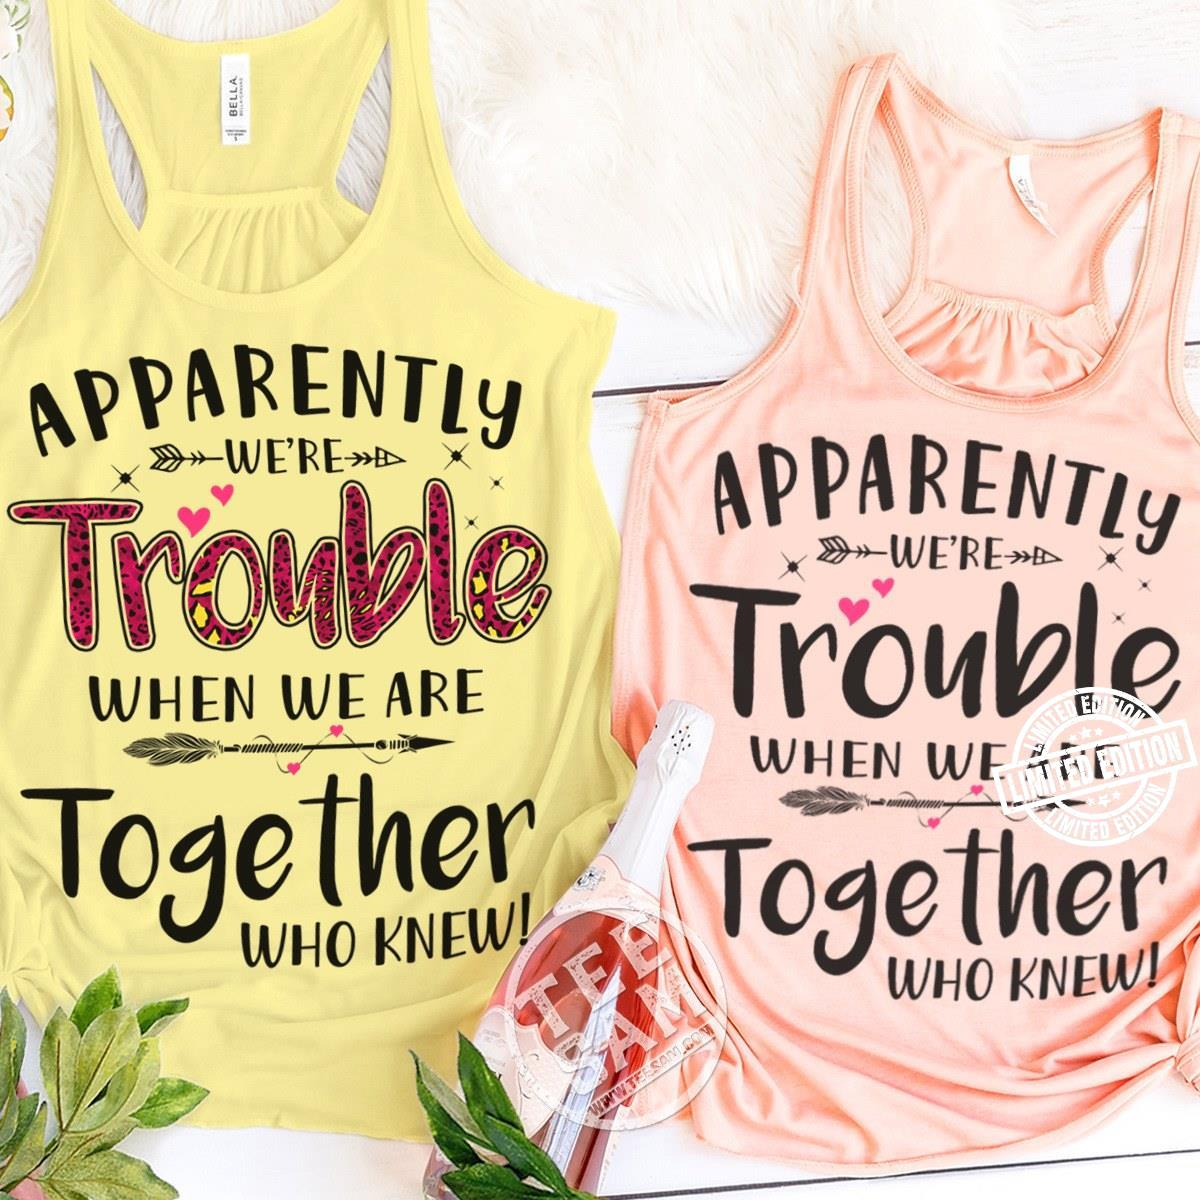 Apparently we're trouble when we are together who knew shirt 1